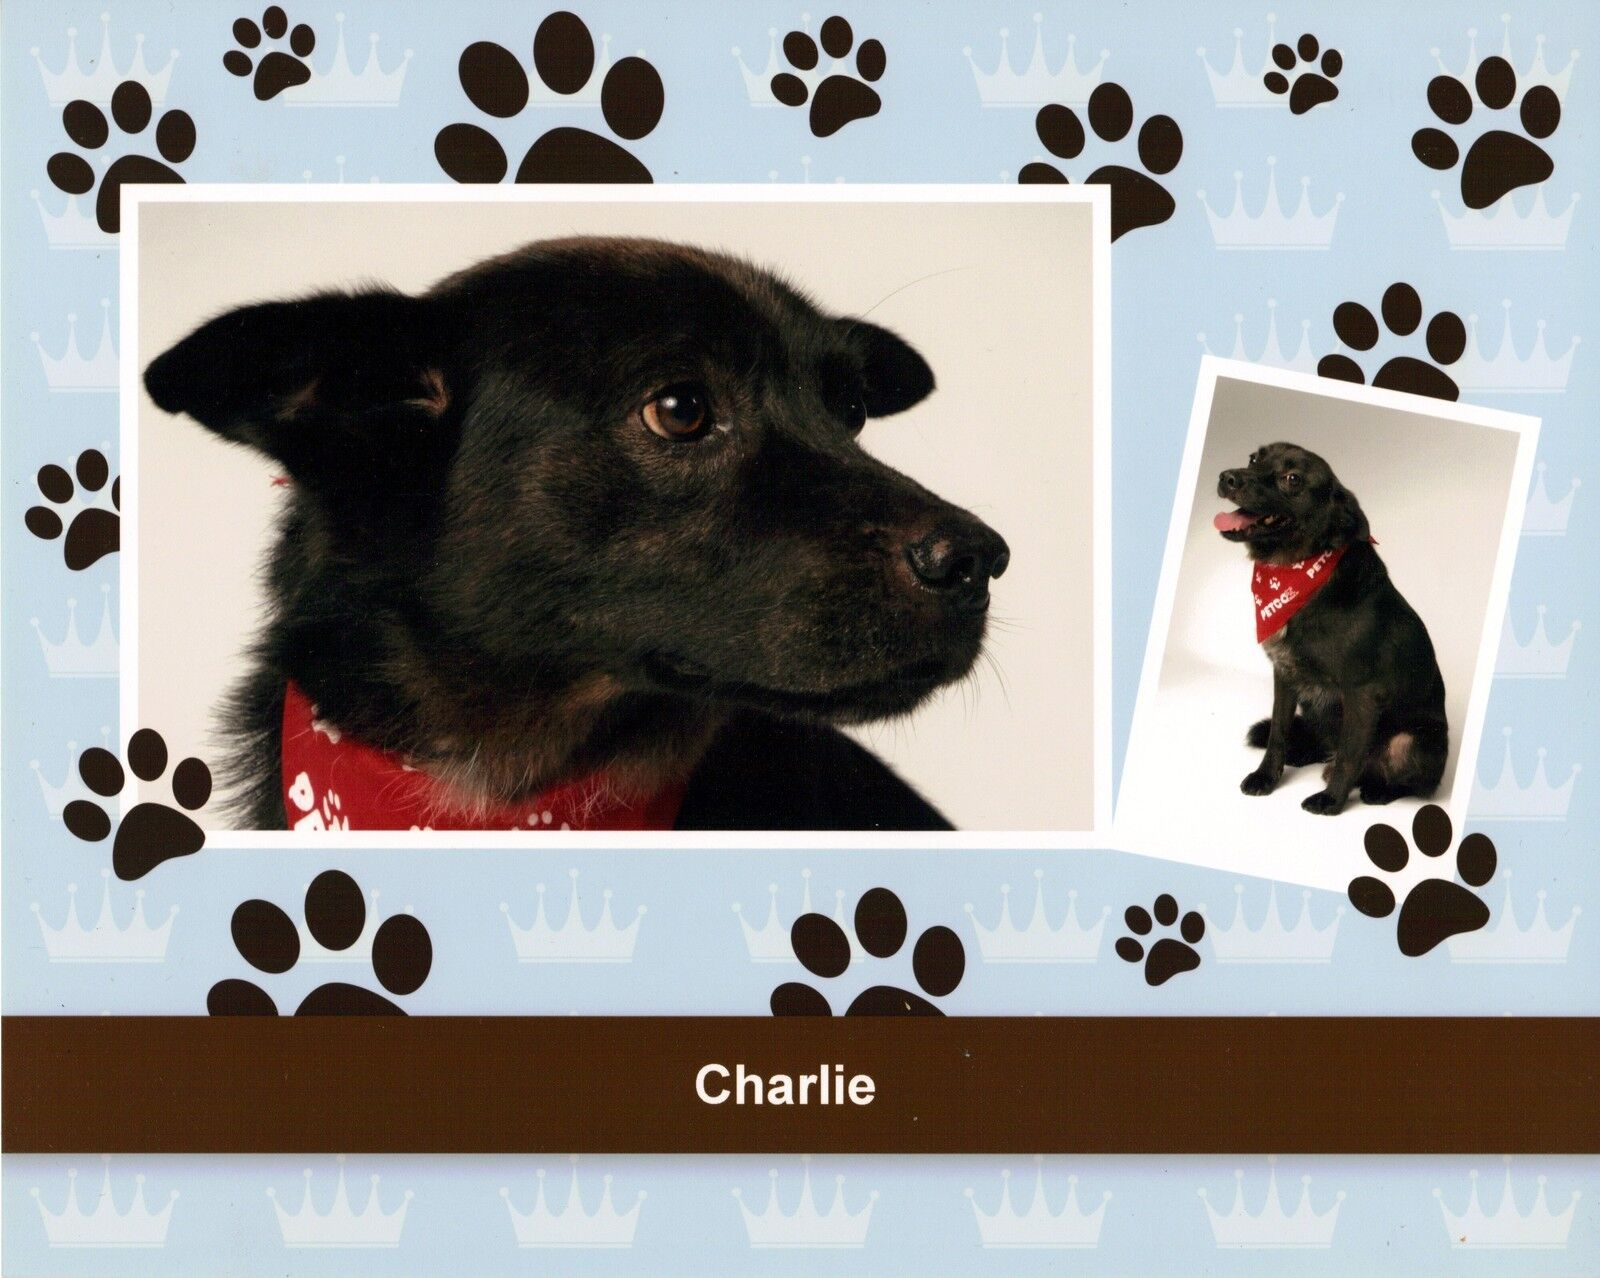 Paws 4 Charlie's Cause